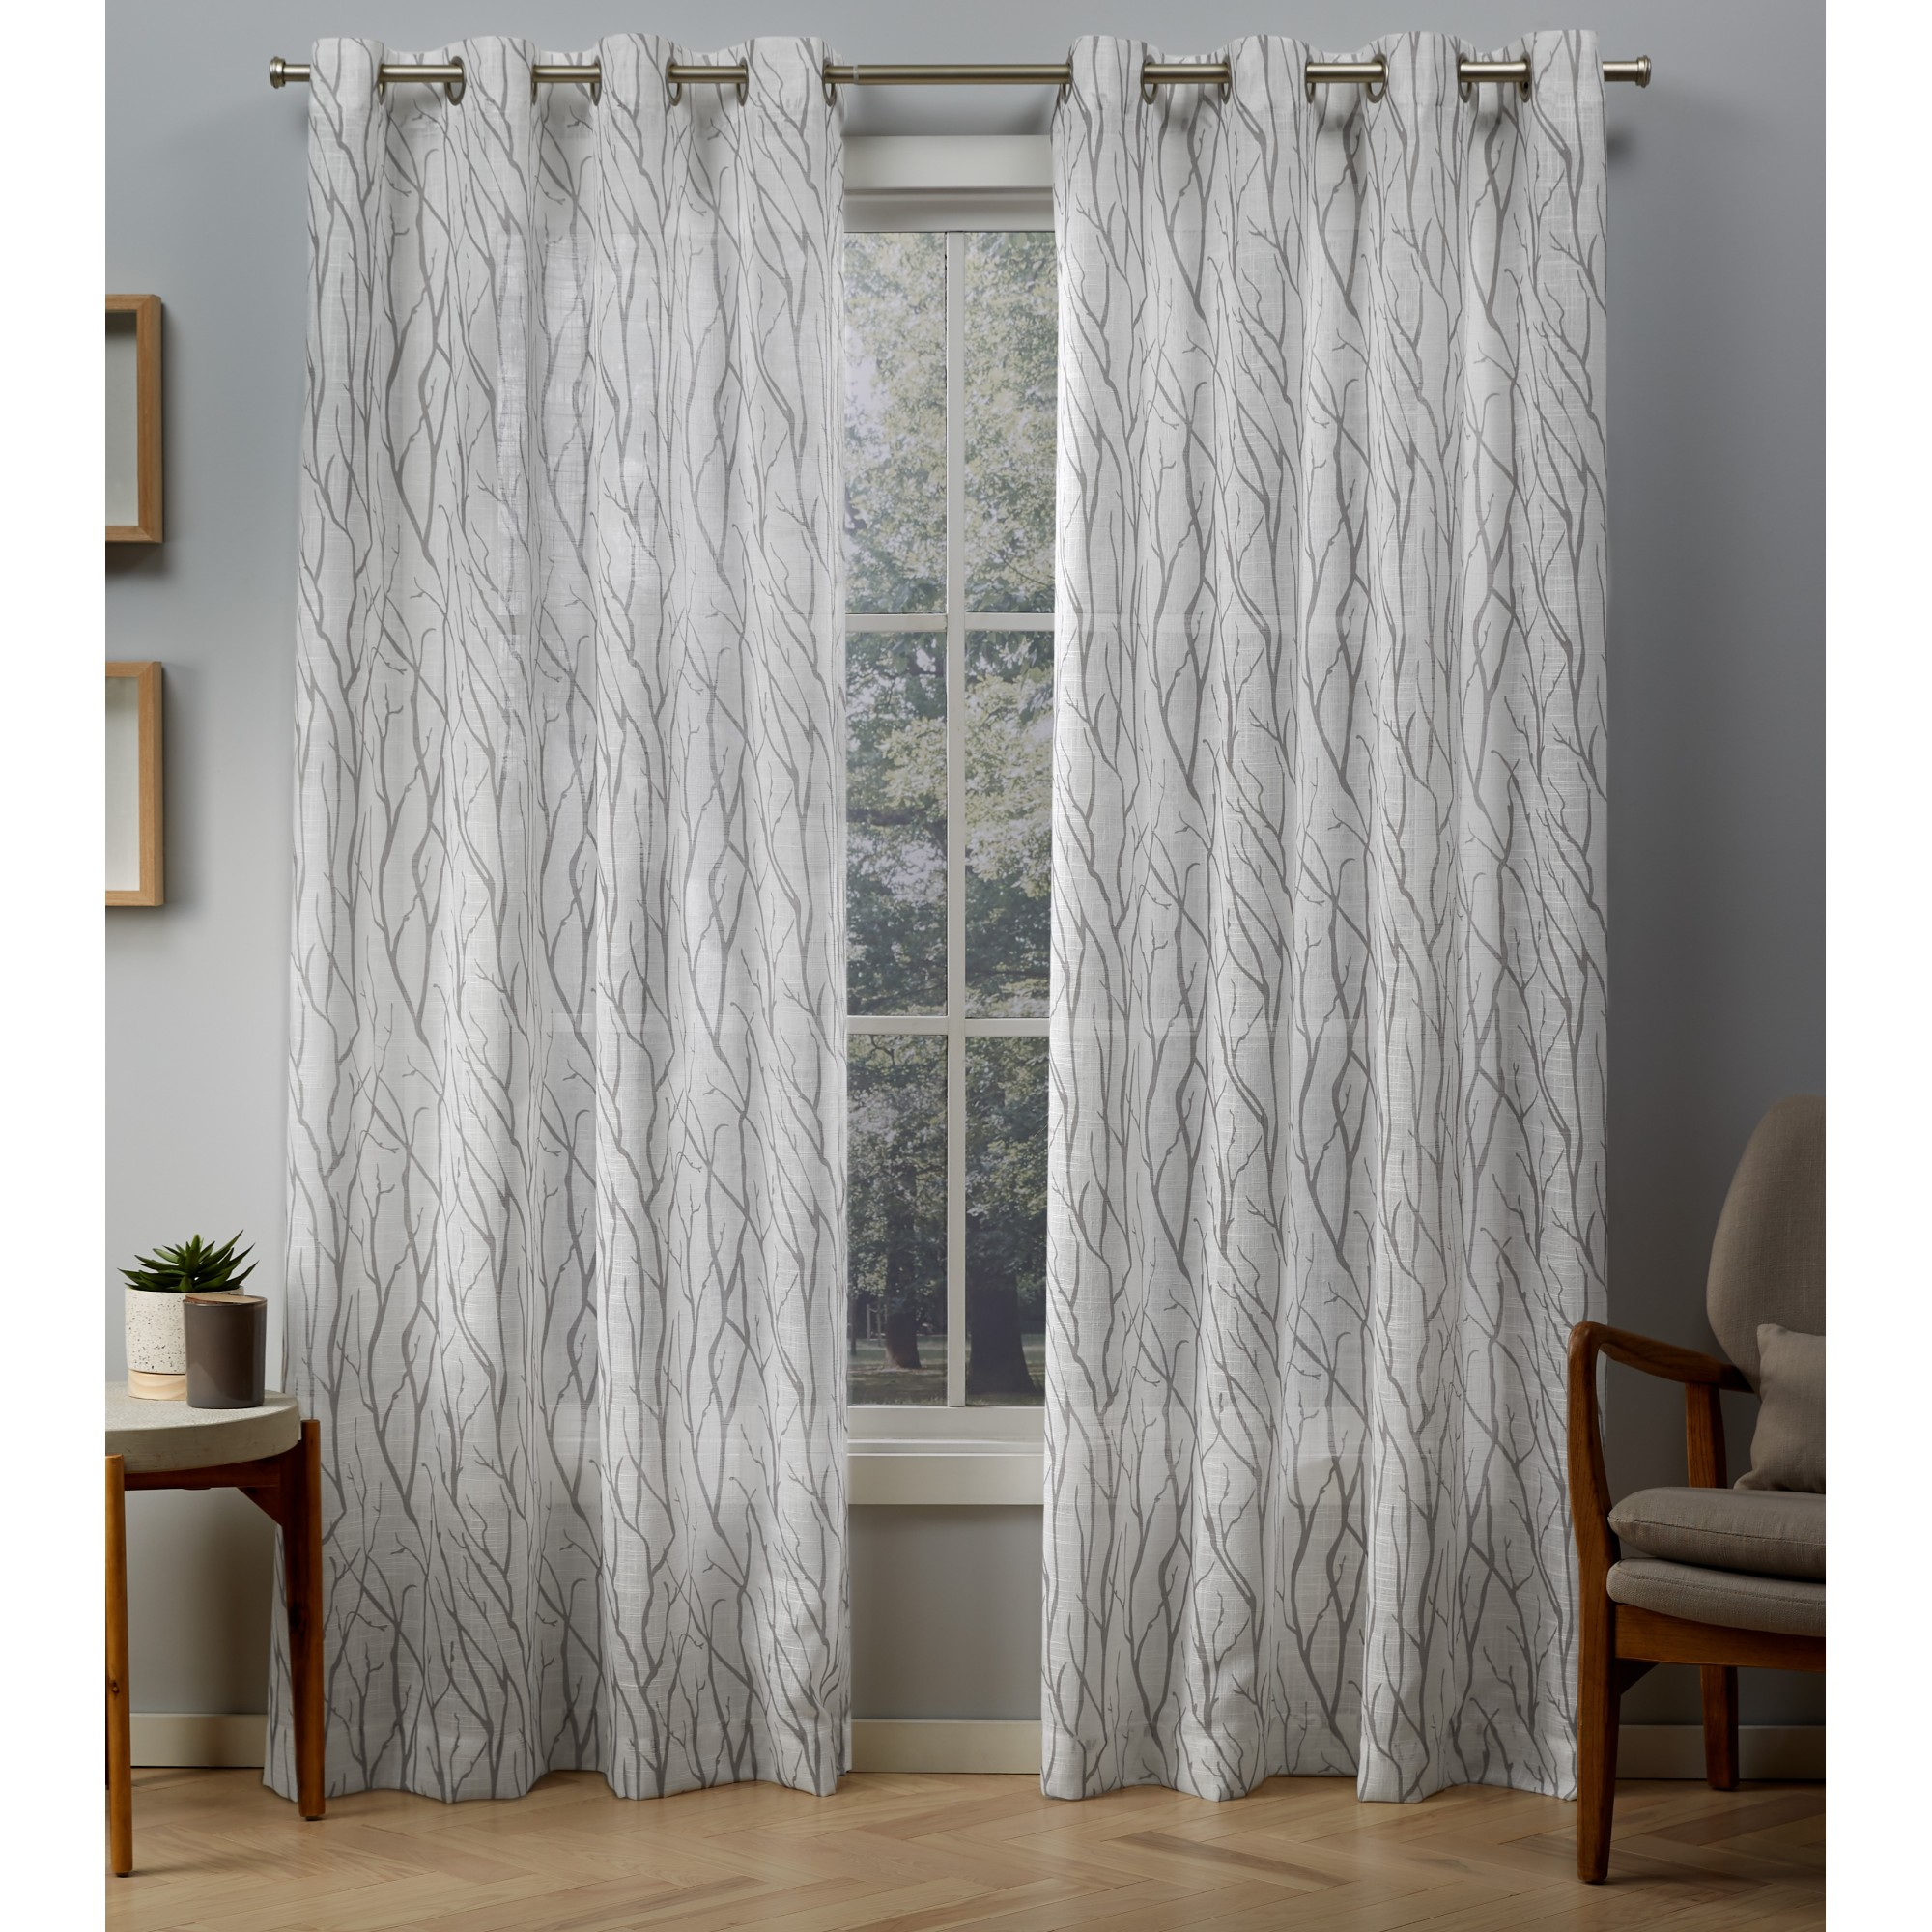 Exclusive Home Curtains 2 Pack Oakdale Sheer Grommet Top Curtain Panels